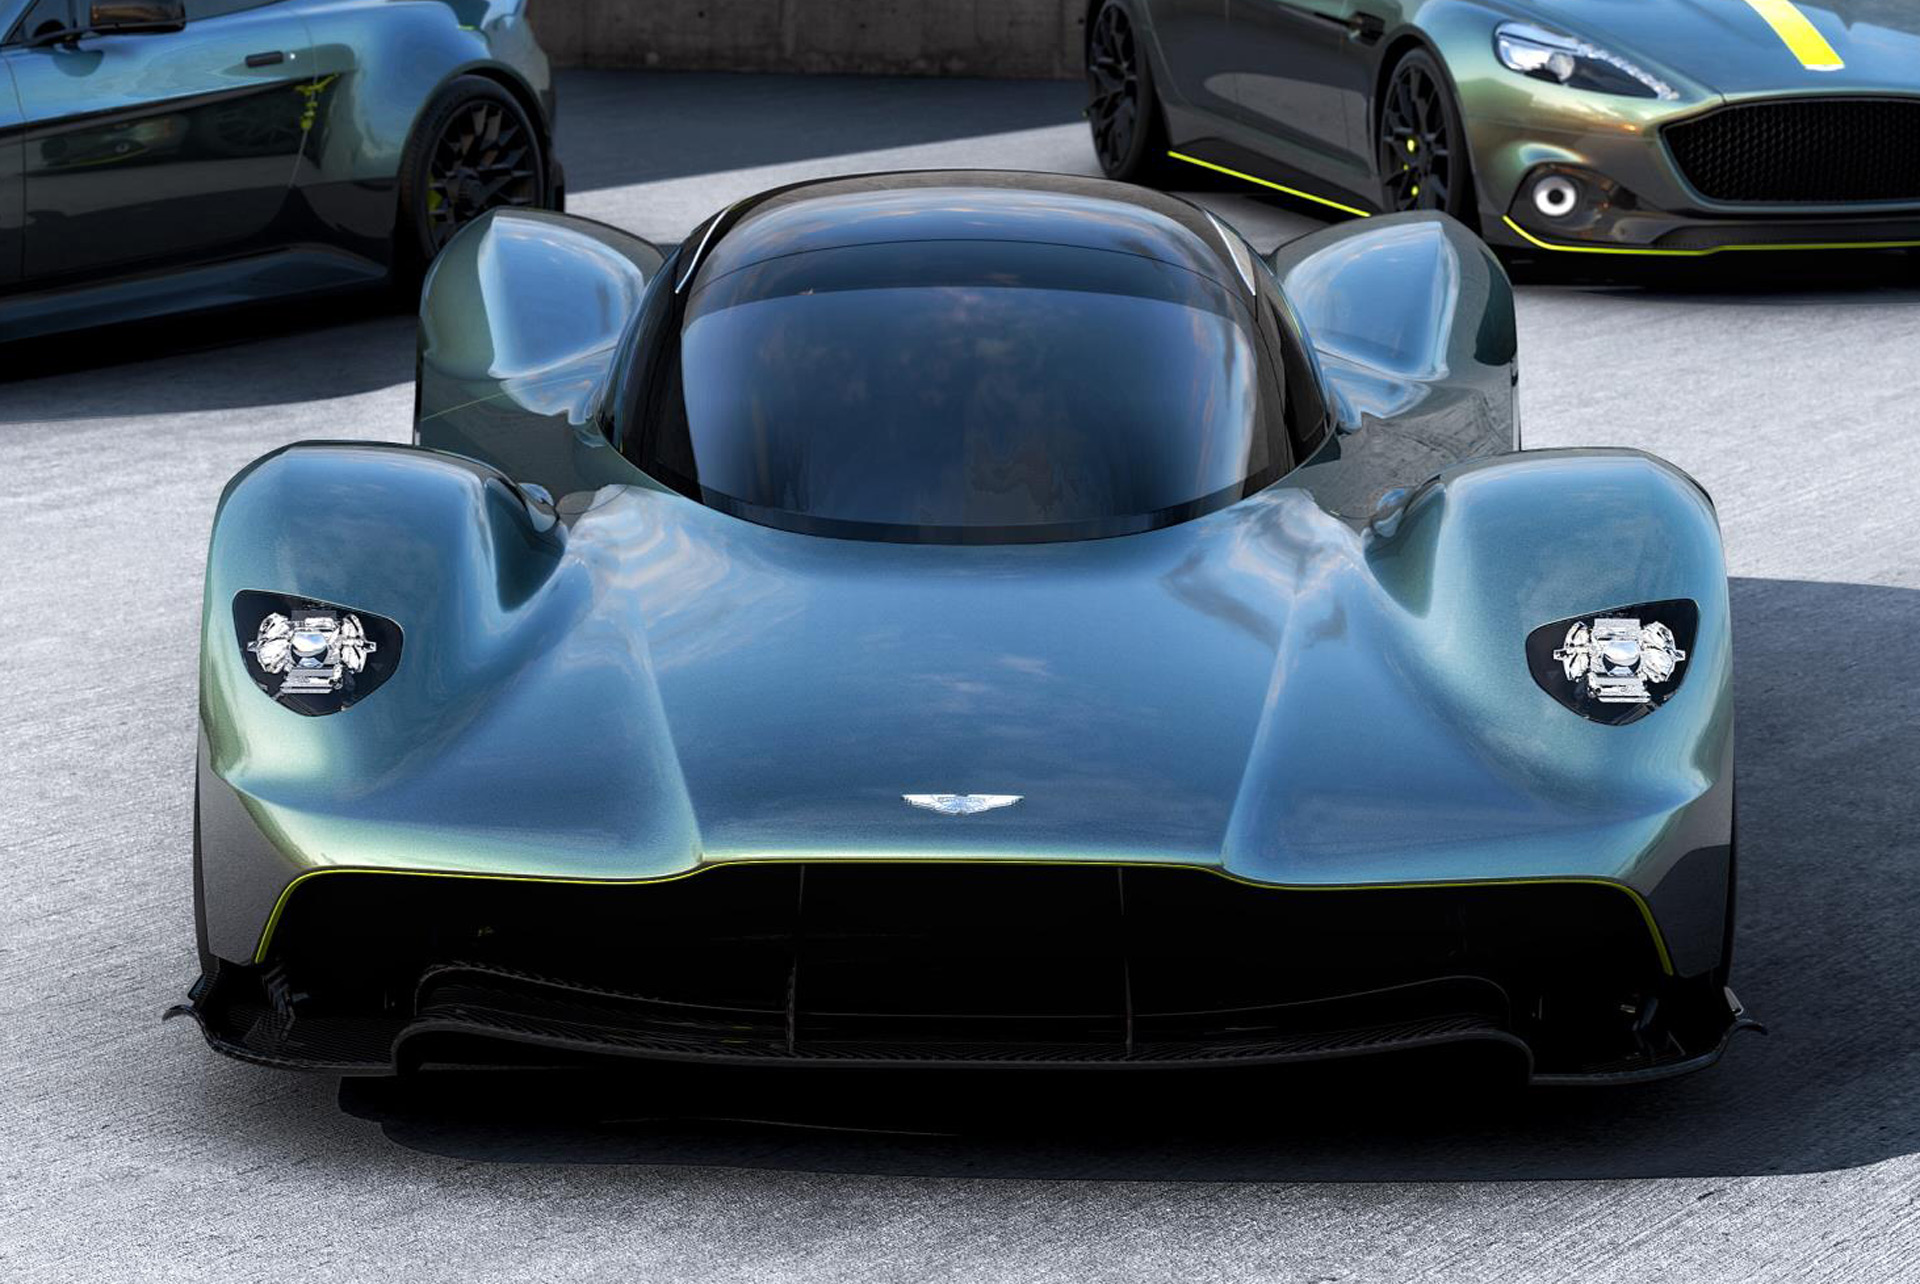 Will The Aston Martin Valkyrie Better A 1 1 Power To Weight Ratio